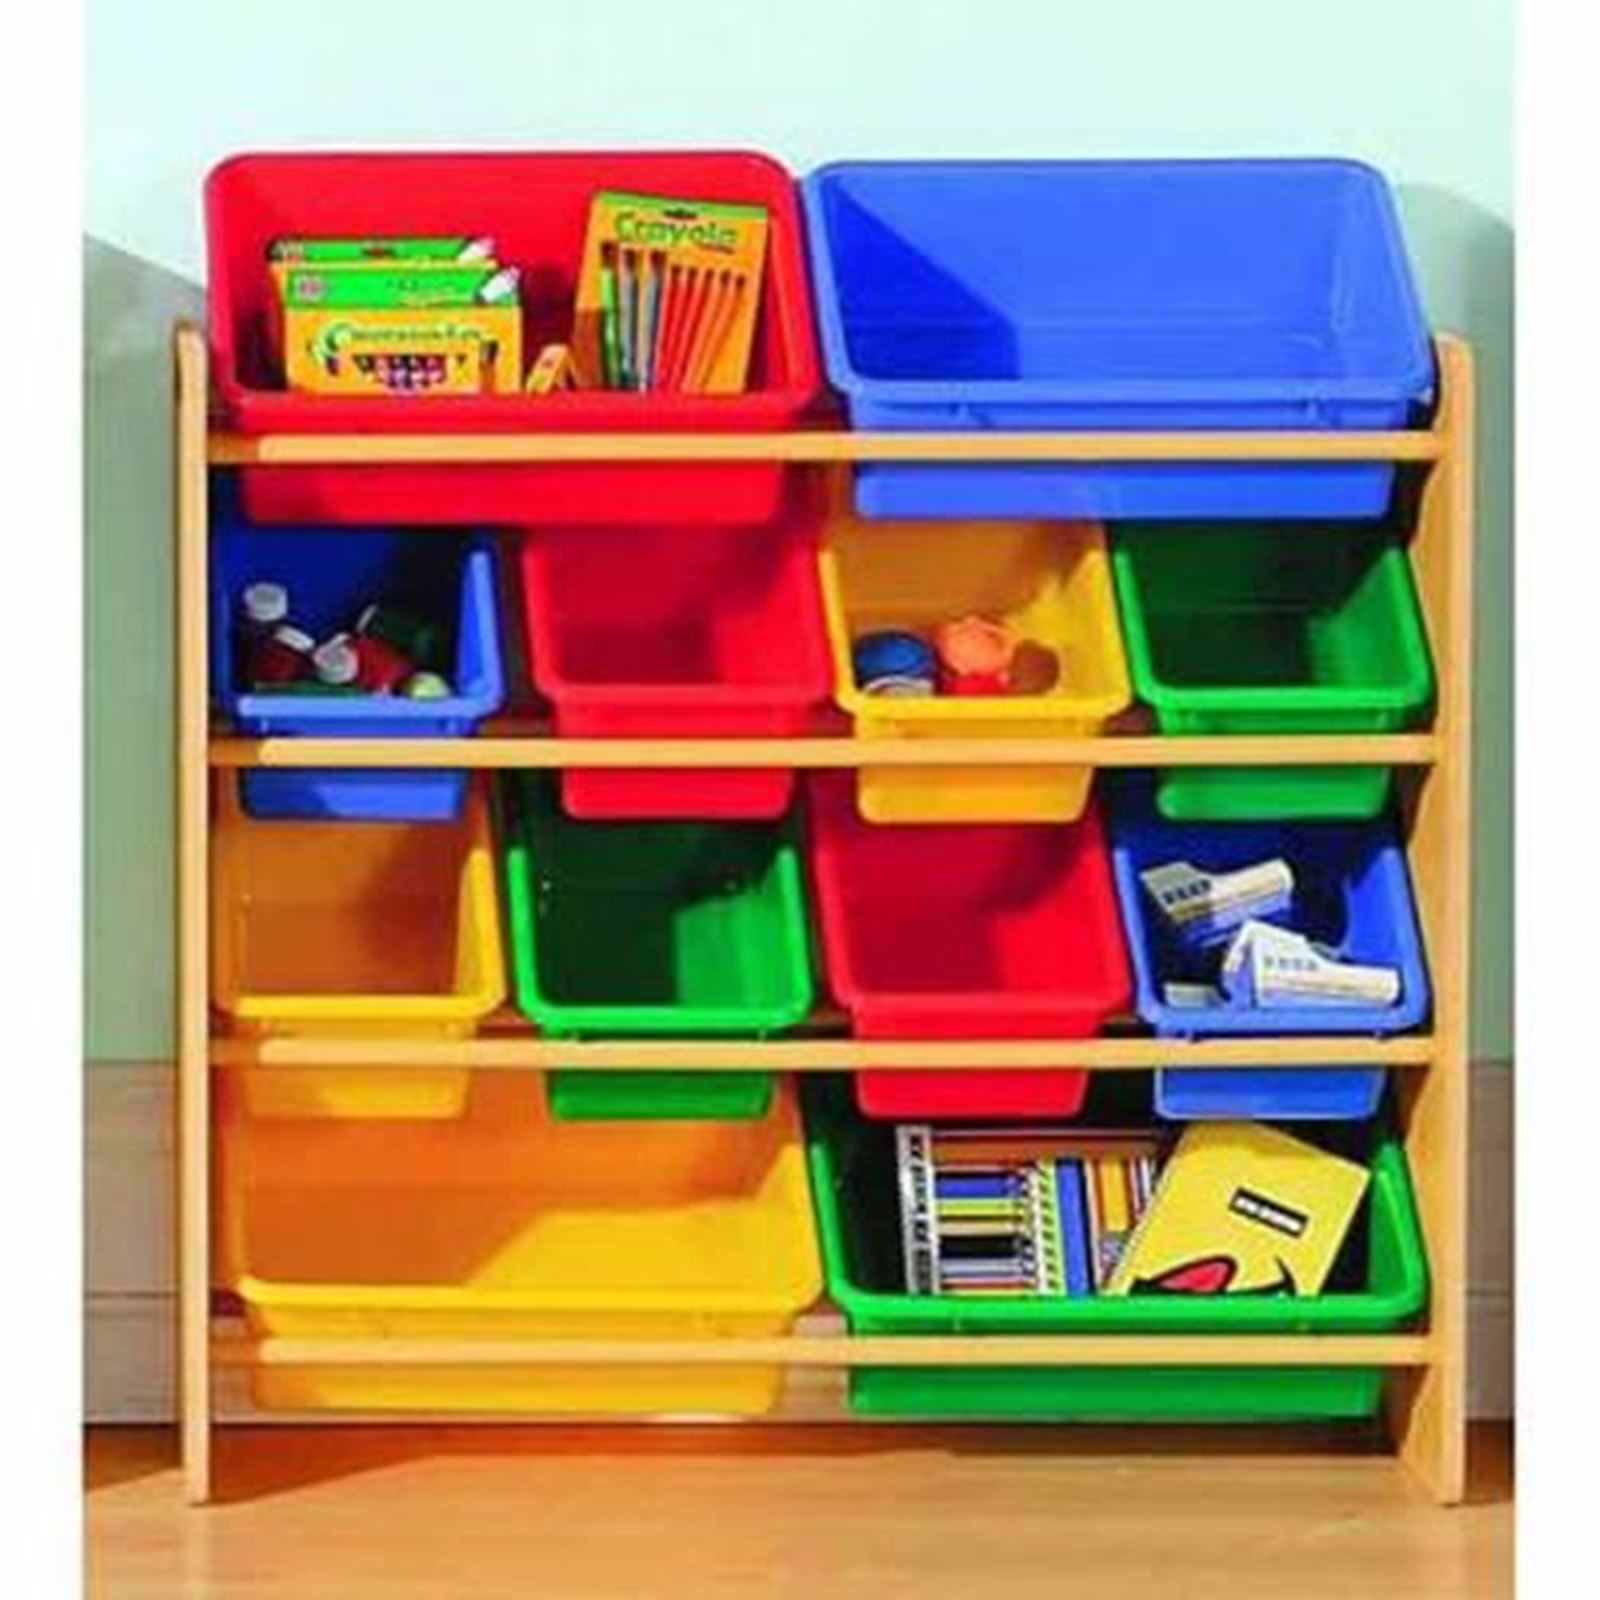 8 Kids Storage And Organization Ideas: Essential Home Kids 12-Bin Organizer